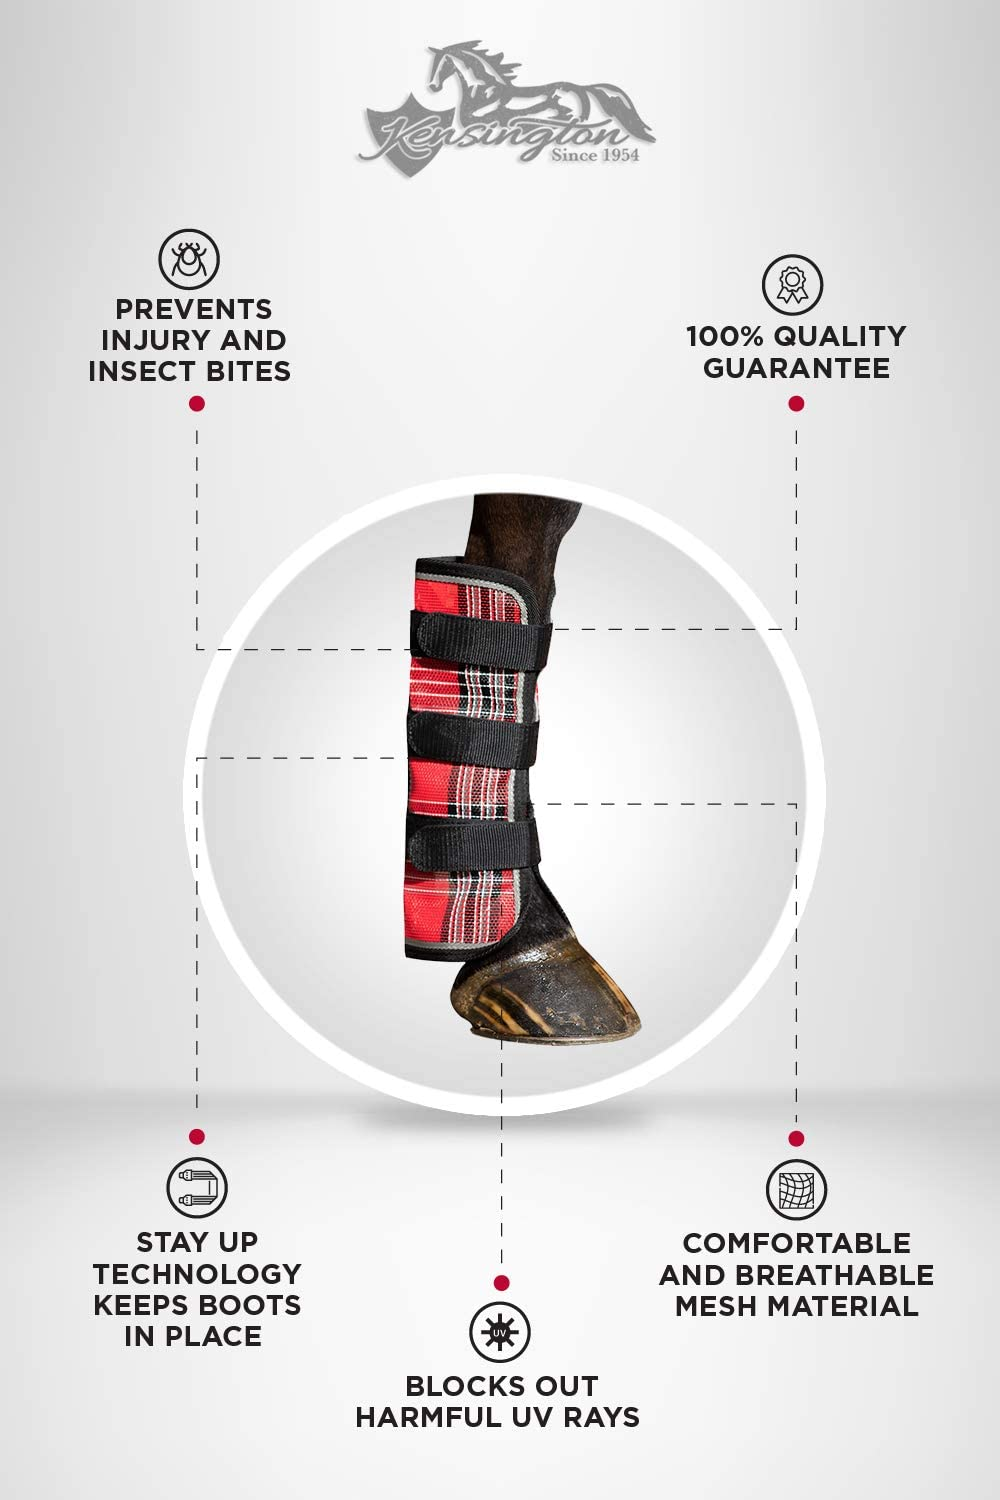 Protection from Insect Bites and UV Rays Kensington Natural Horse Fly Boots Sold in Pairs Web Trimmed Stay-Up Technology 2 Boots